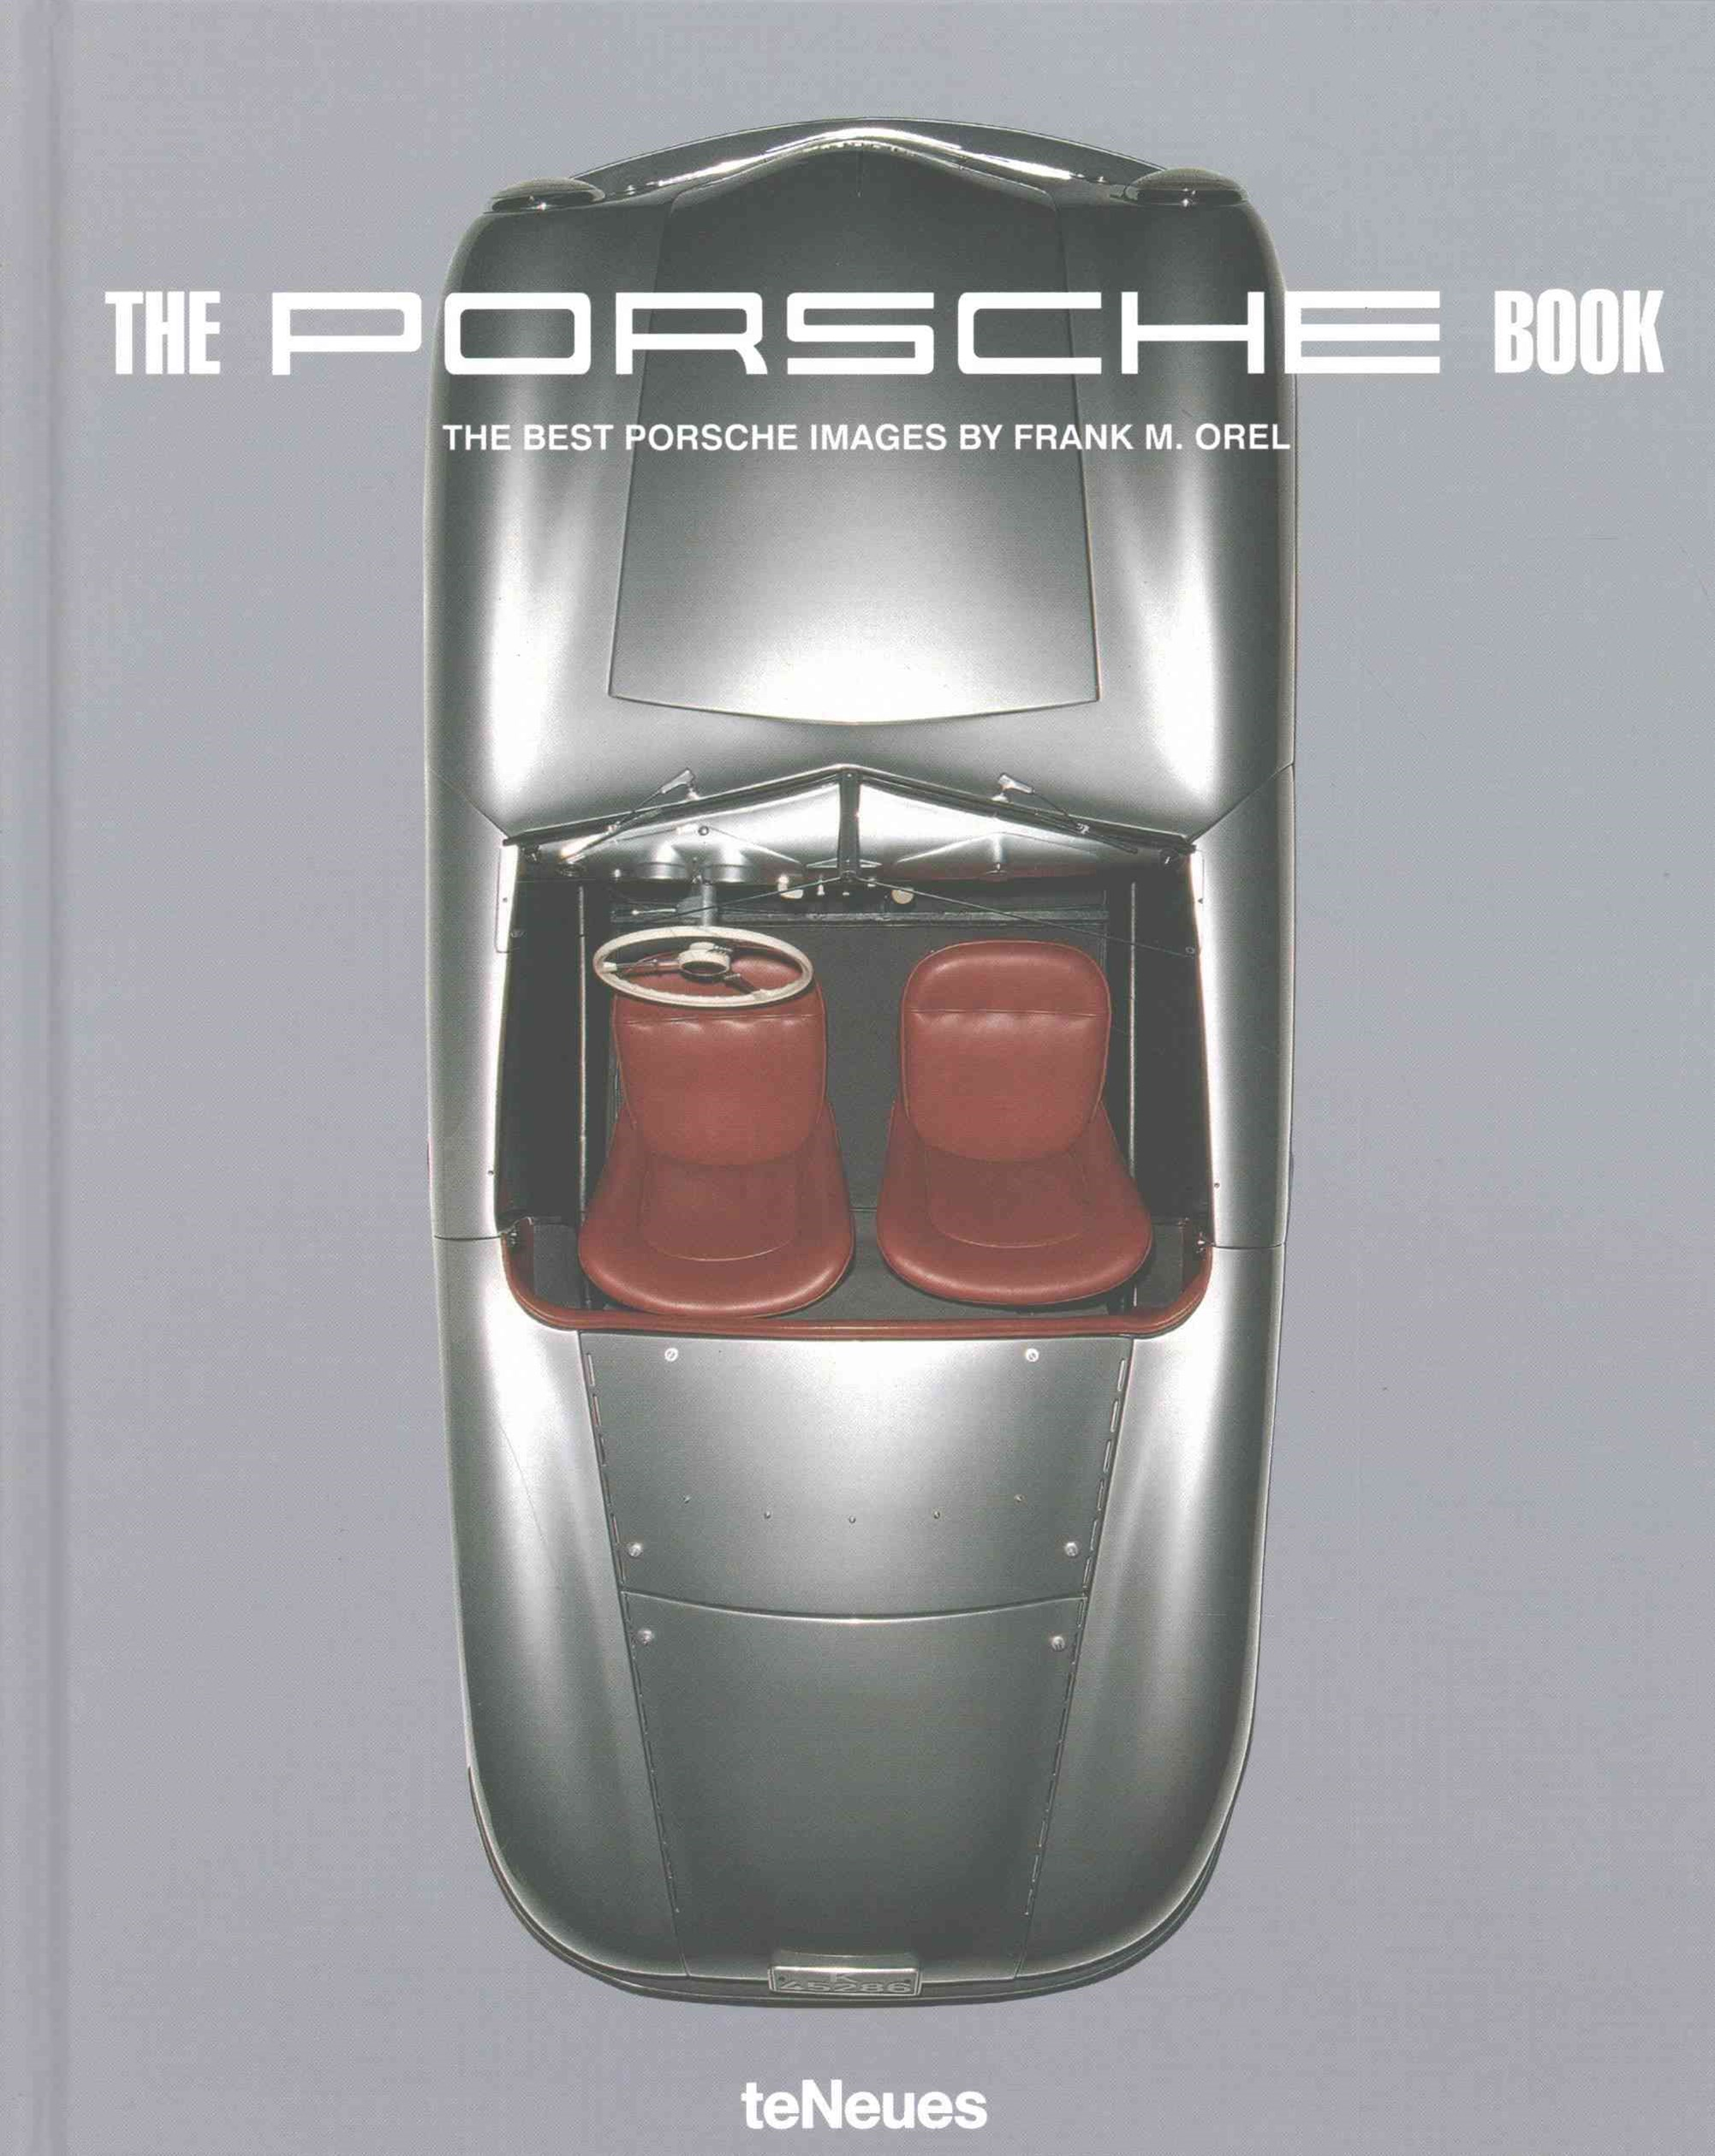 Porsche Book (small edition)